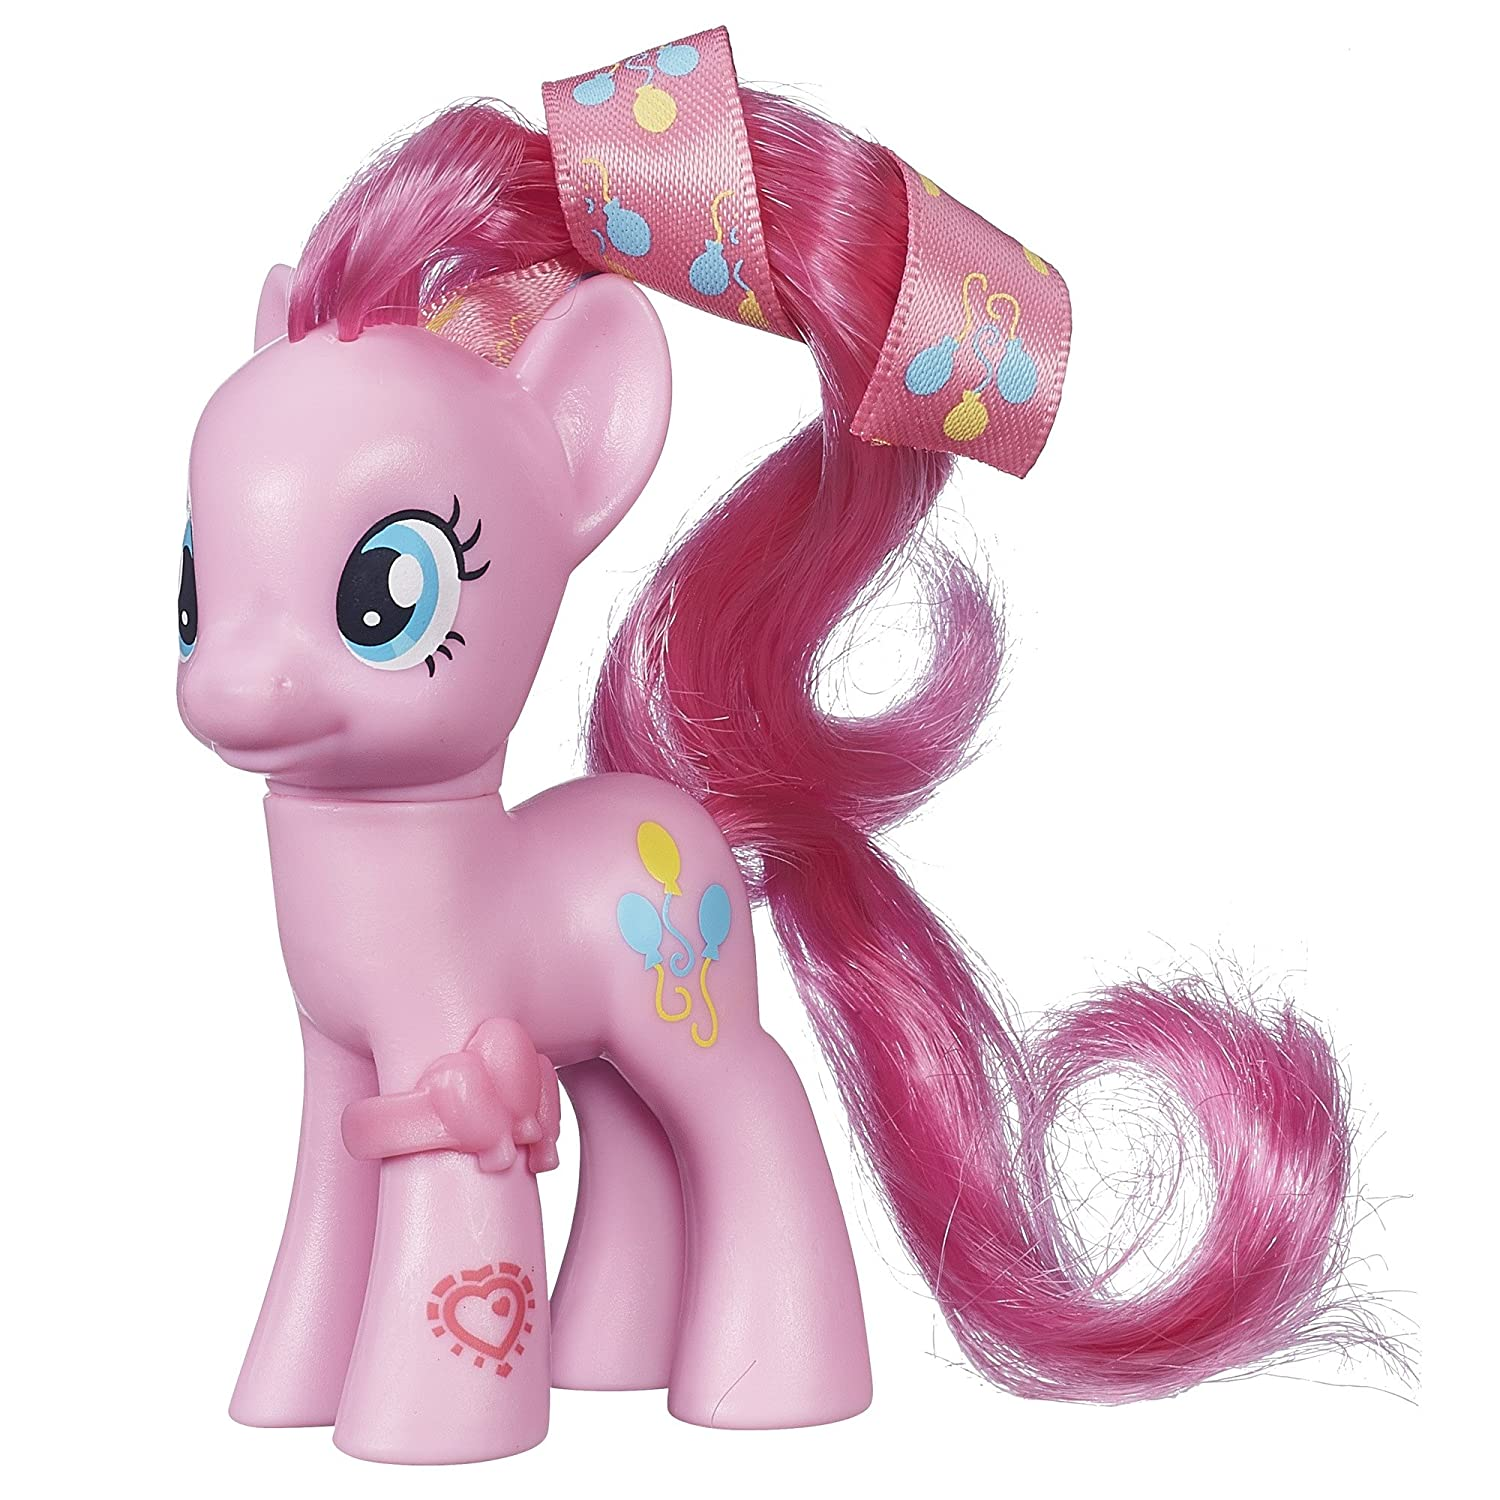 Top 10 Best My Little Pony Toys For Kids Ages 2 To 4 For